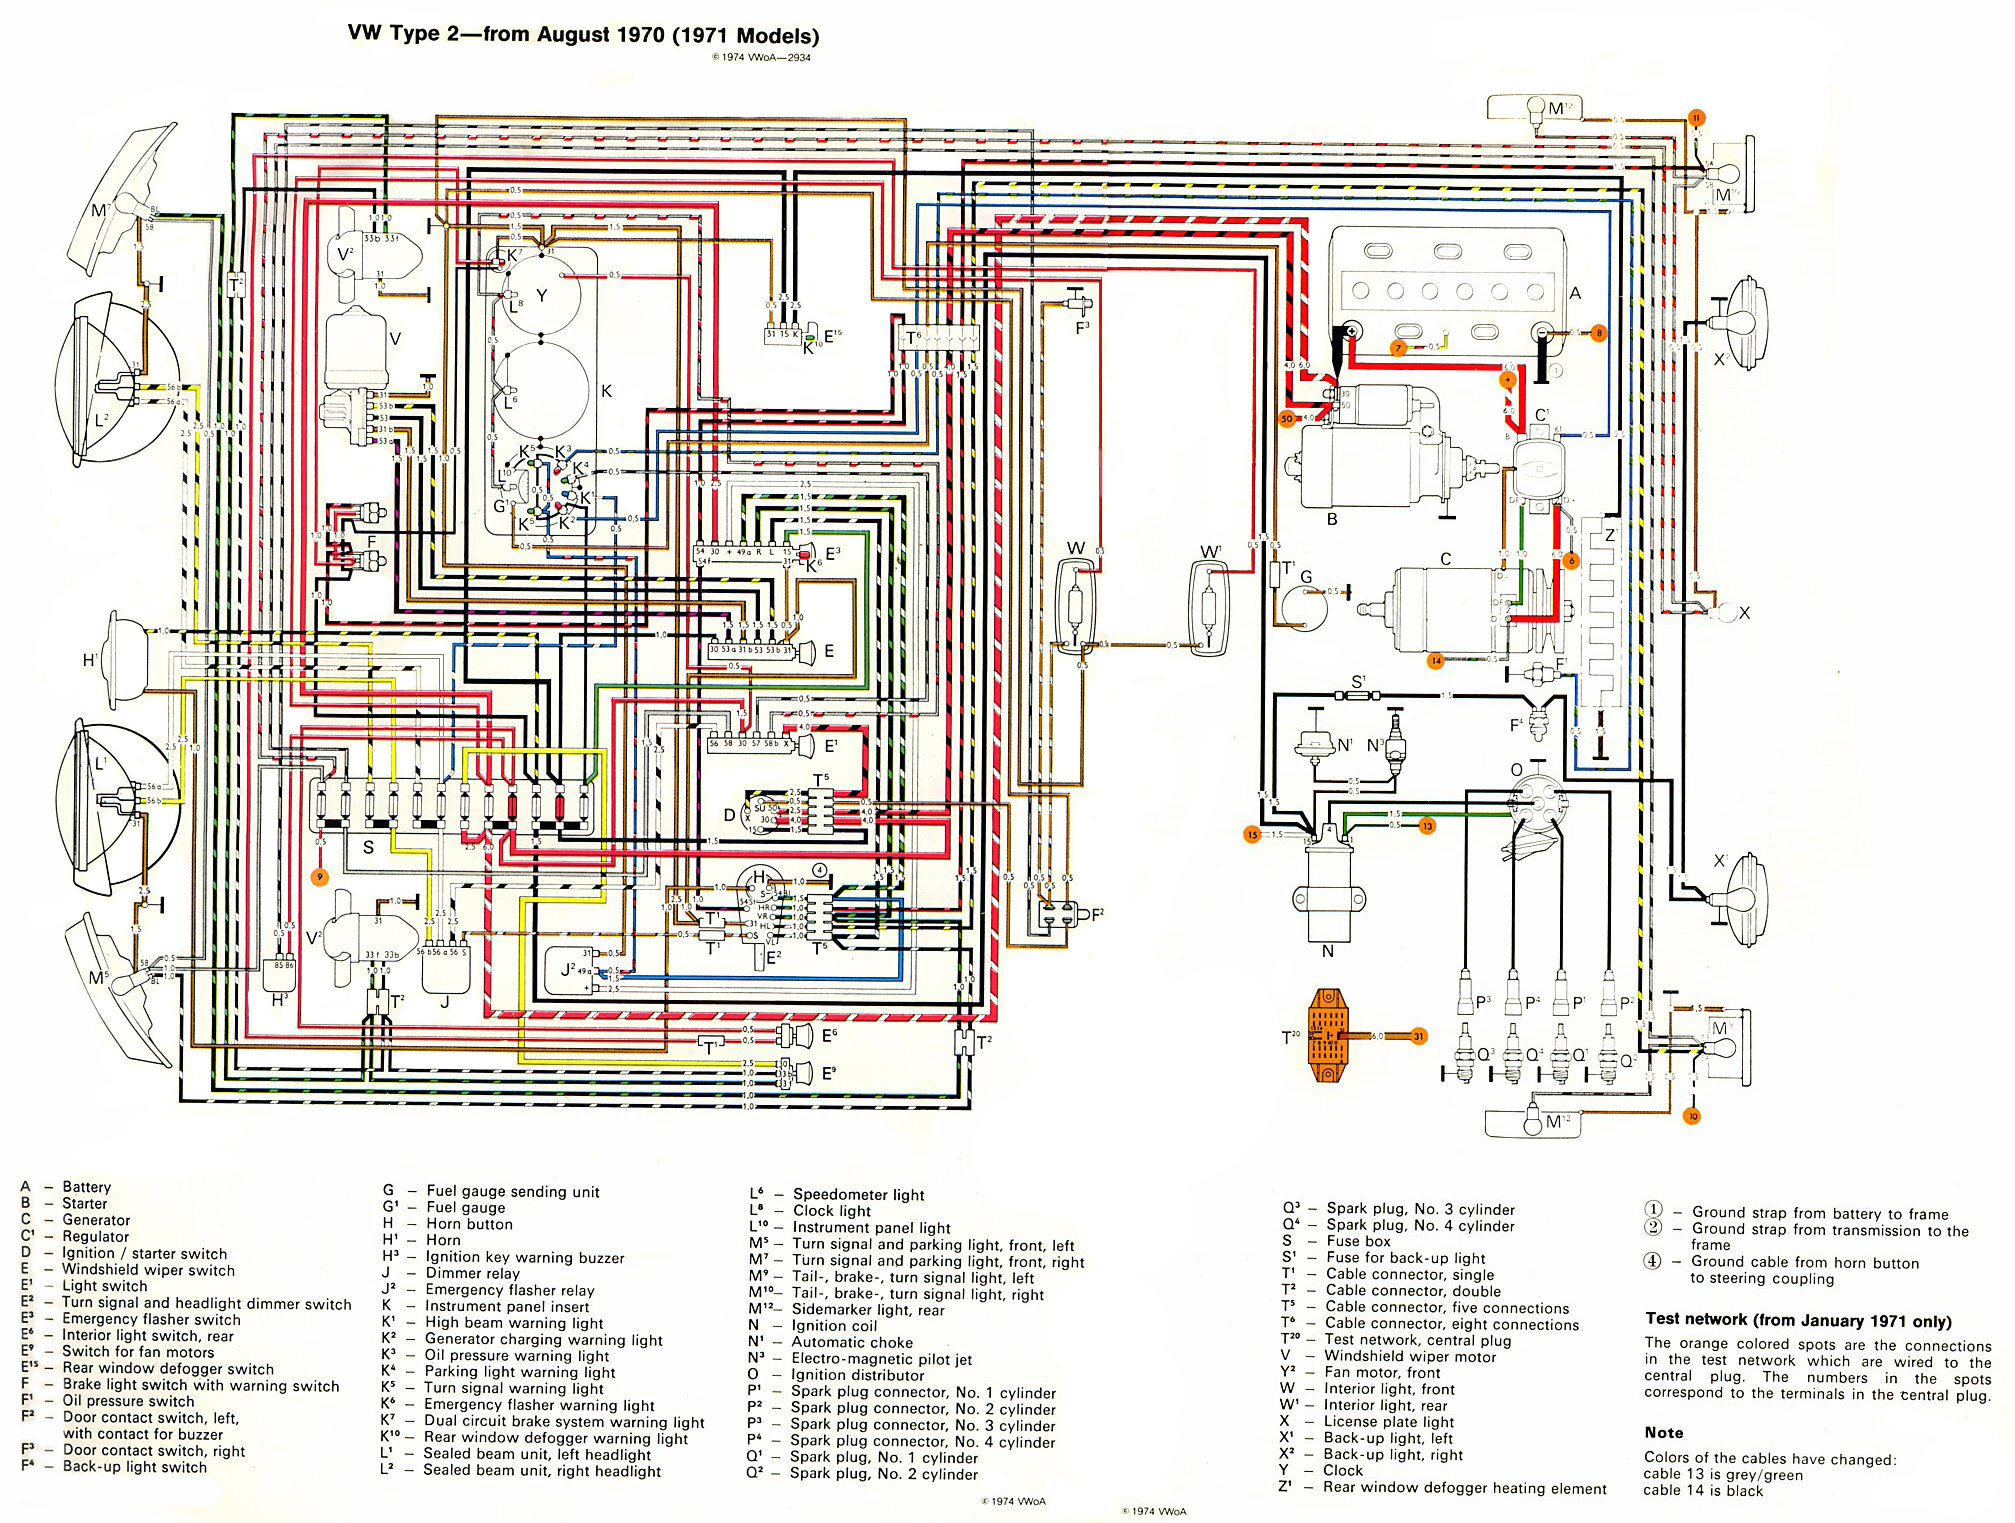 baybus_71_fixed wiring schematic diagram carrier package unit wiring diagram vw wiring diagram symbols at creativeand.co